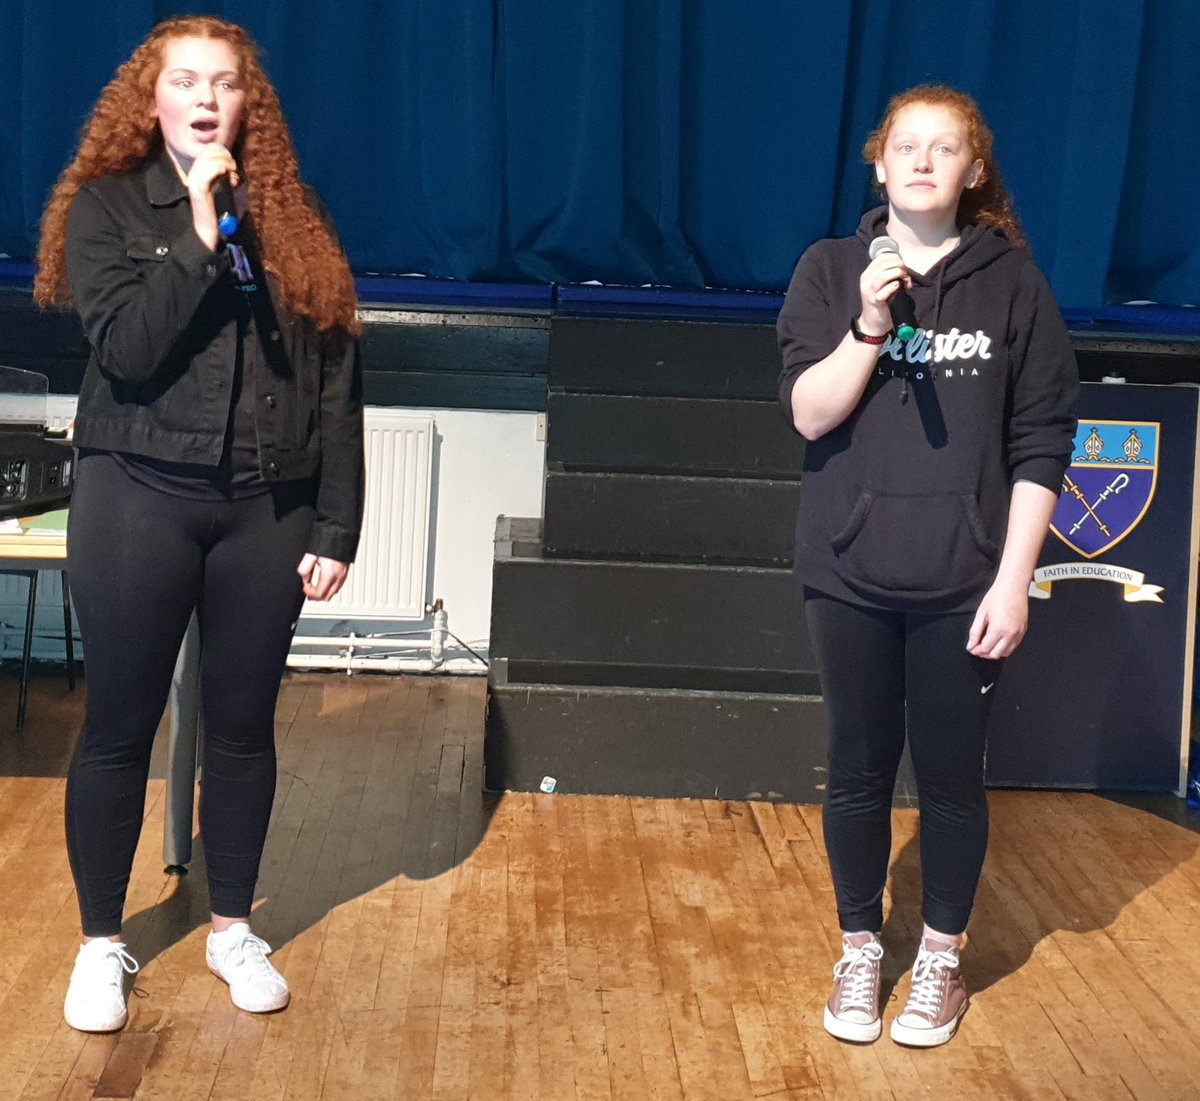 Awesome Rehearsals for tomorrow's BGT #soexcited  #supertalentedstudents  #superproudteachers  🎶🎹💃🤼♀️🤸♀️🕺🎤🎺